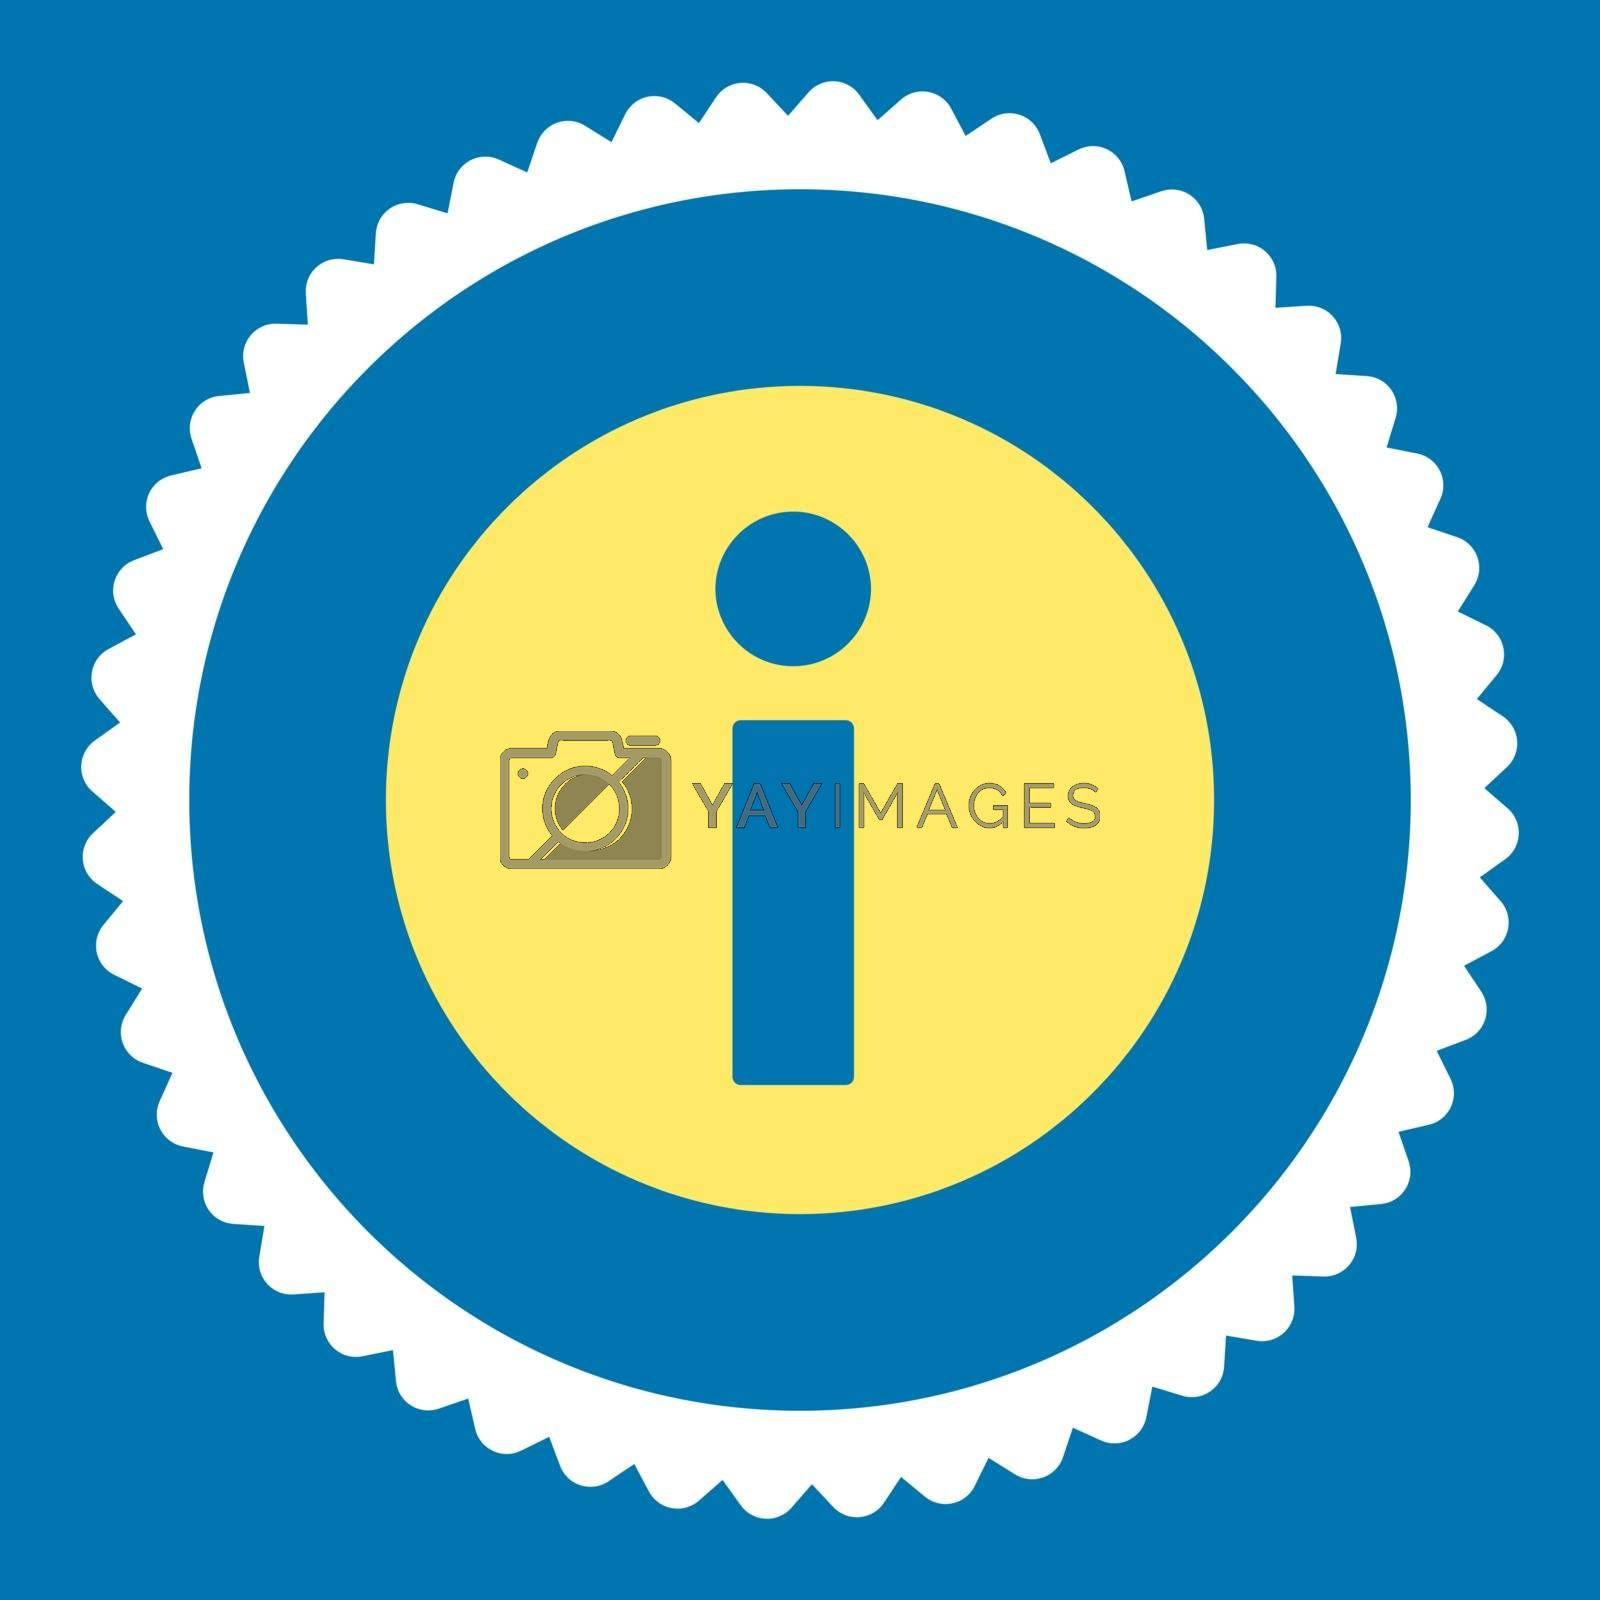 Information flat yellow and white colors round stamp icon by Aha-Soft